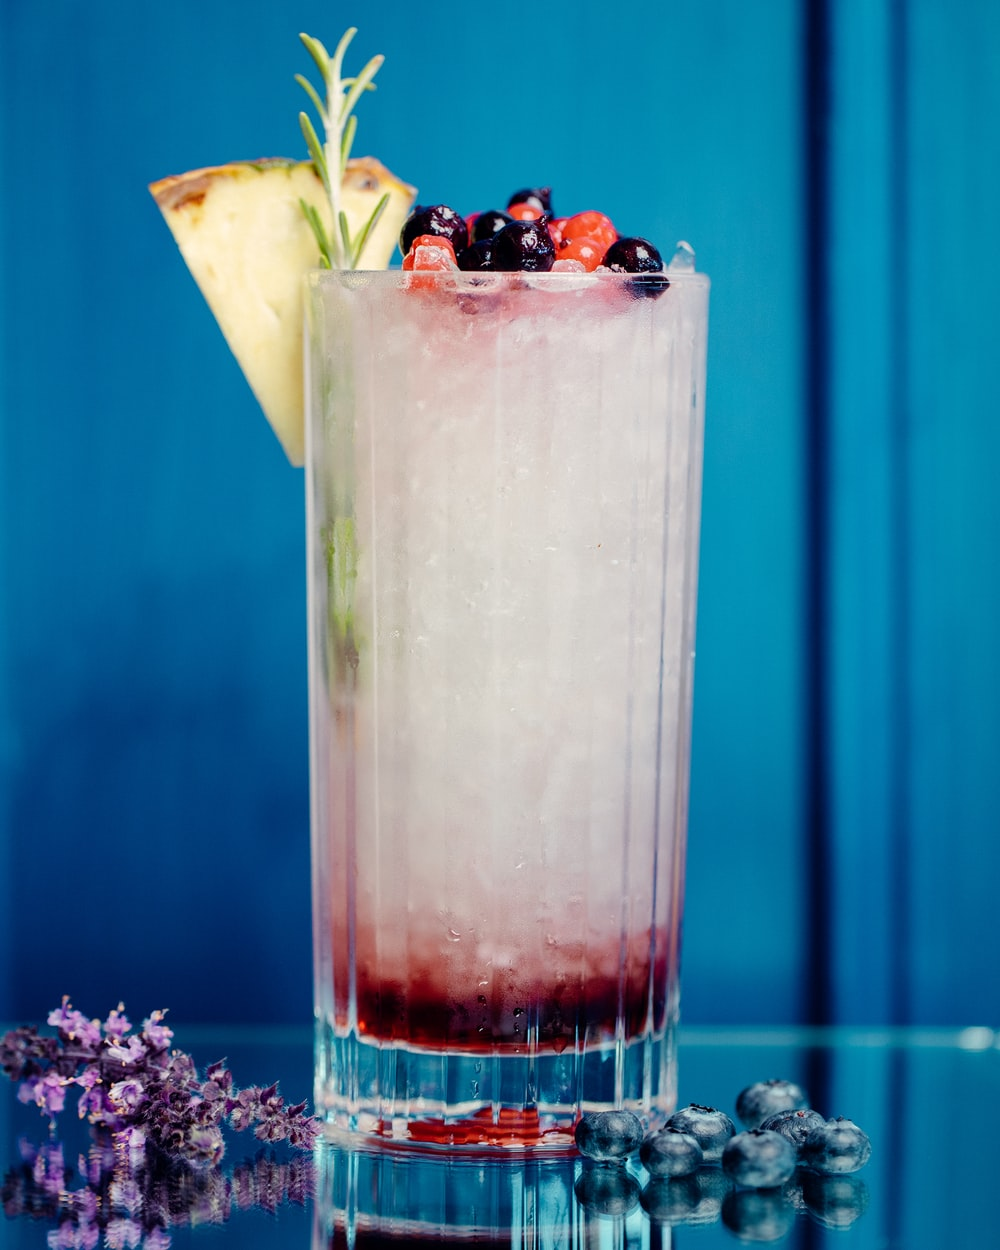 clear drinking glass with ice and black berries